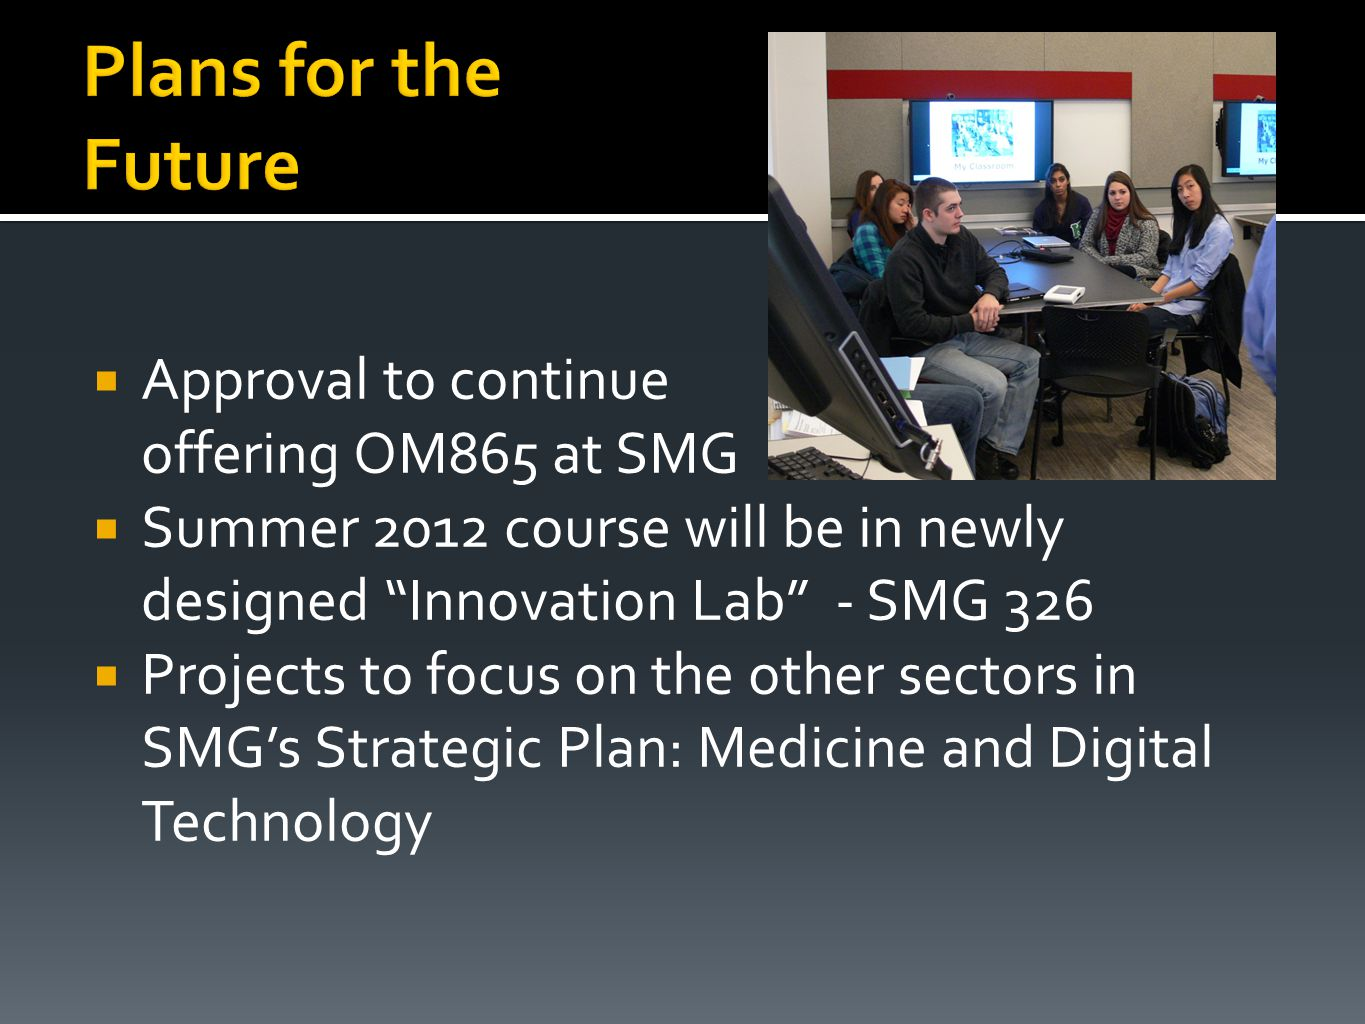  Approval to continue offering OM865 at SMG  Summer 2012 course will be in newly designed Innovation Lab - SMG 326  Projects to focus on the other sectors in SMG's Strategic Plan: Medicine and Digital Technology